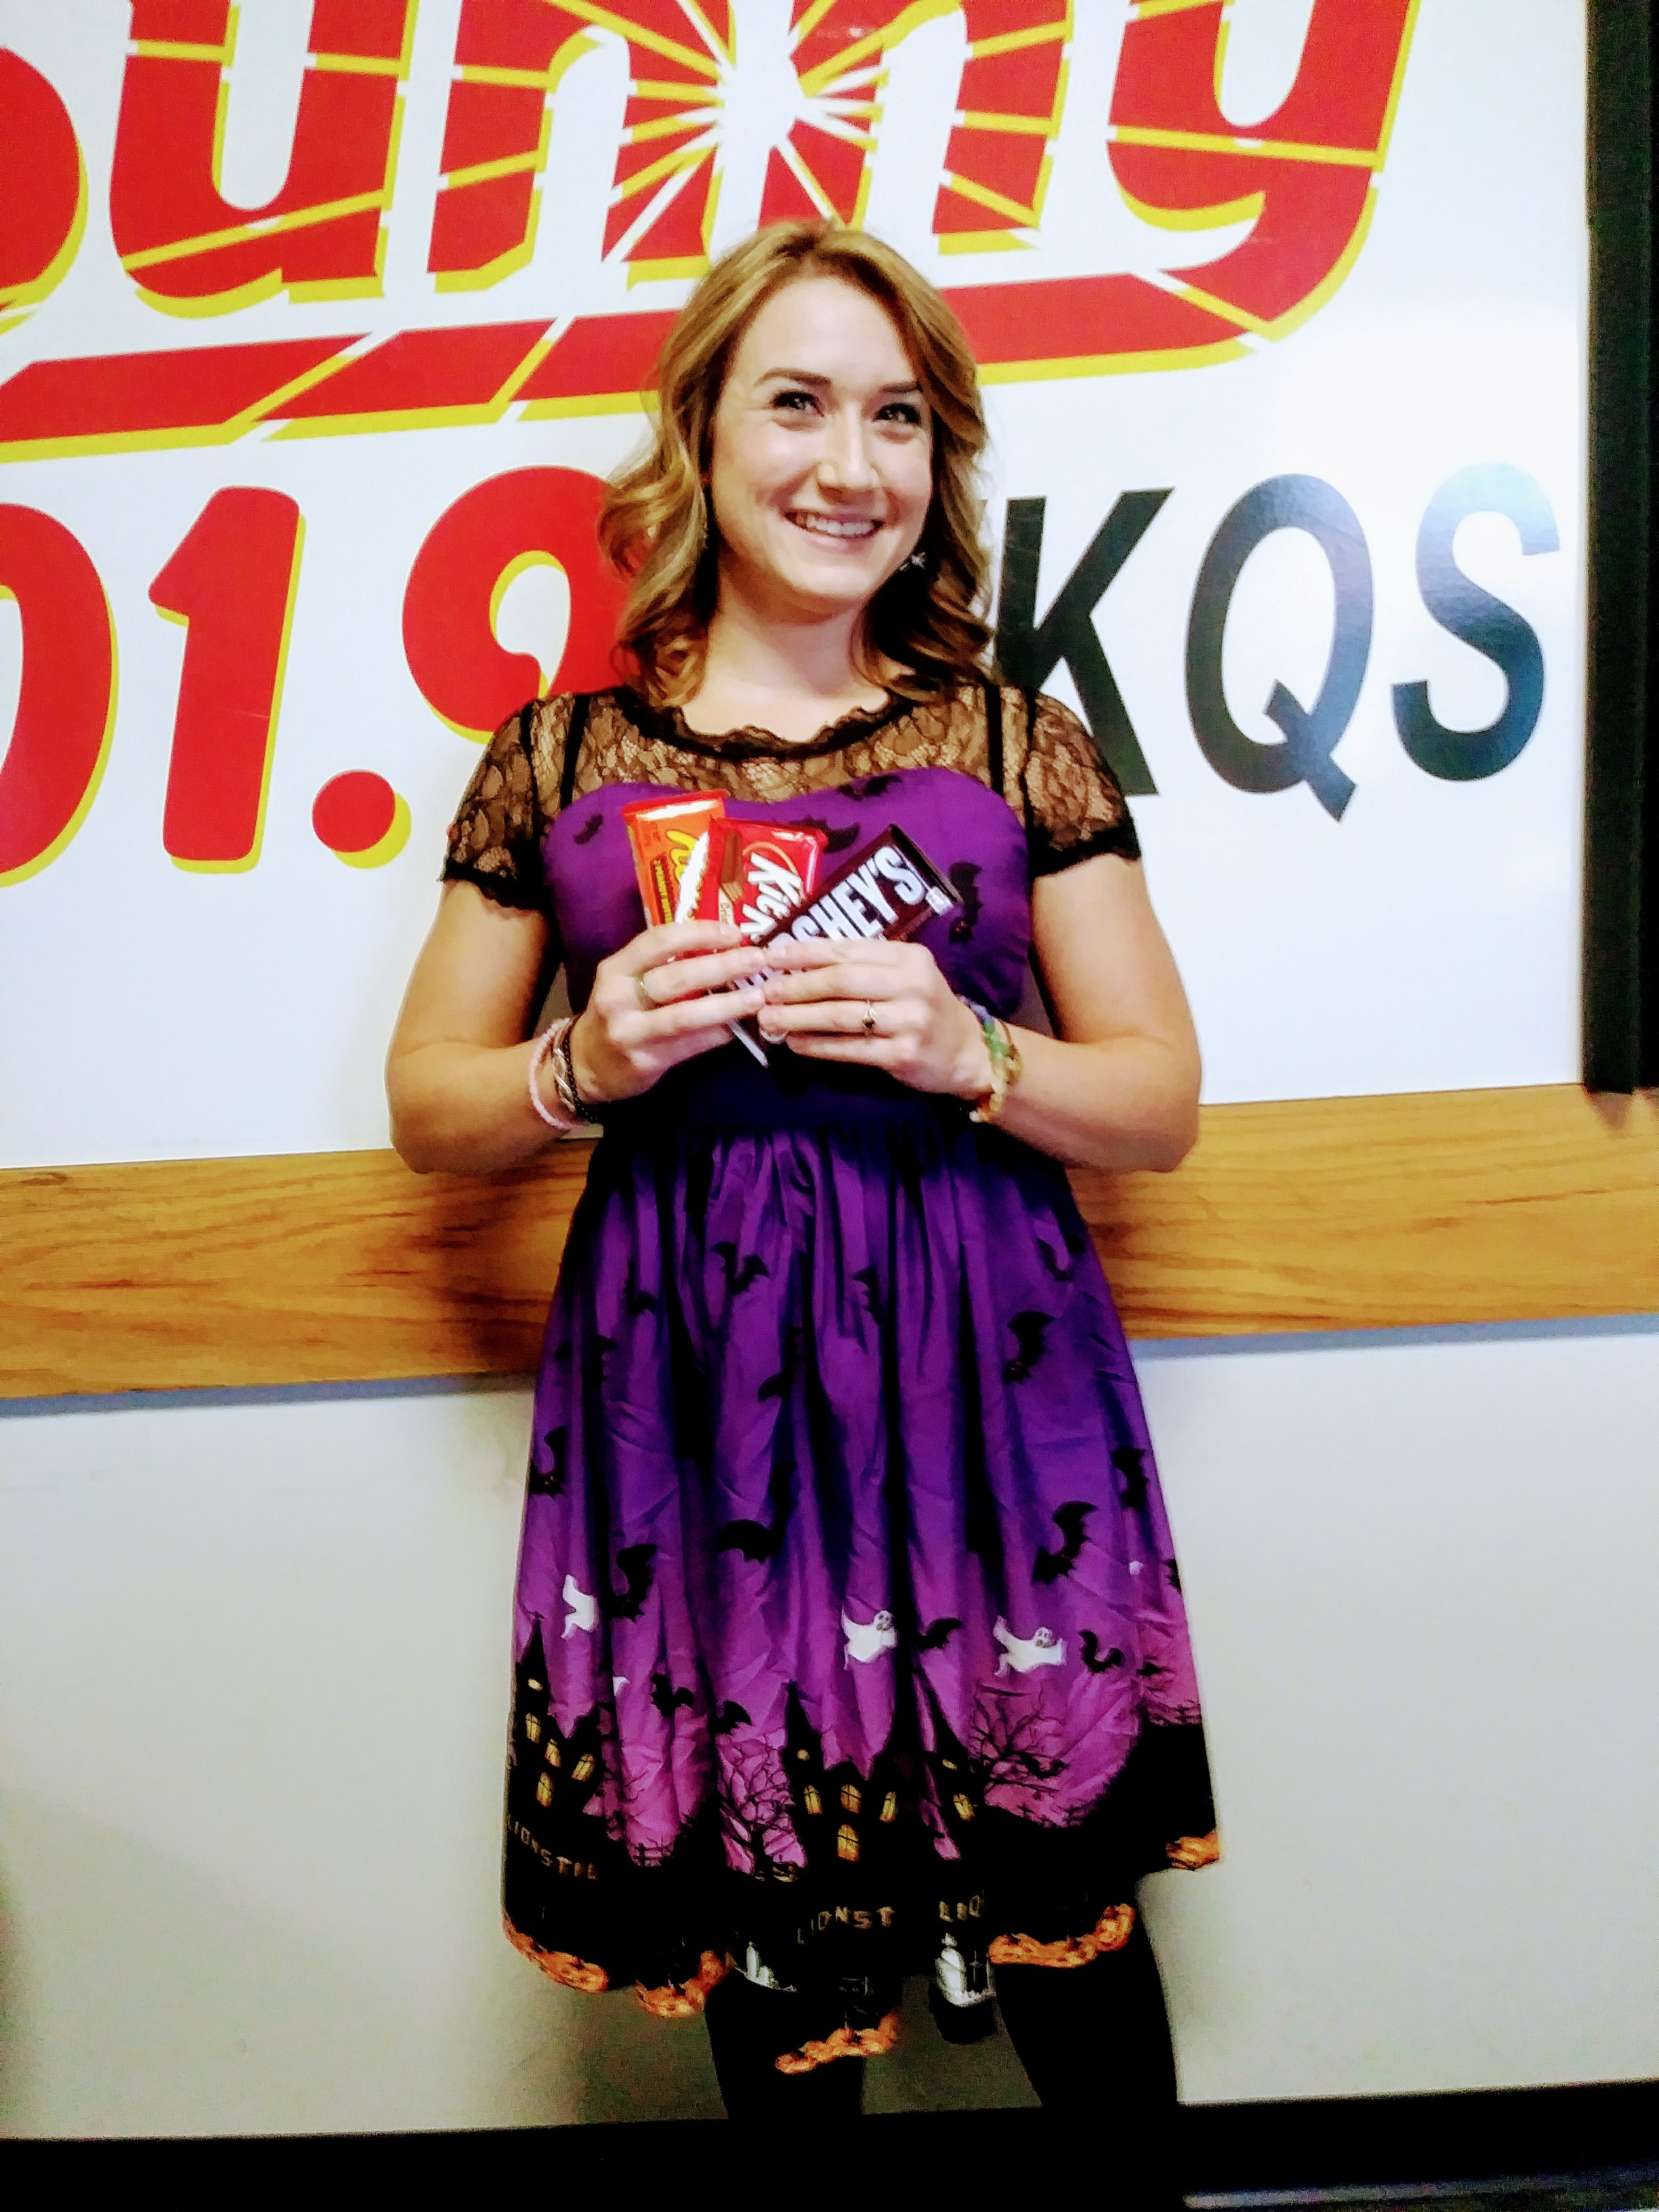 Kelsey's Amazing Halloween Outfit, Stealing All the Candy! The Sunny Morning Show.jpg